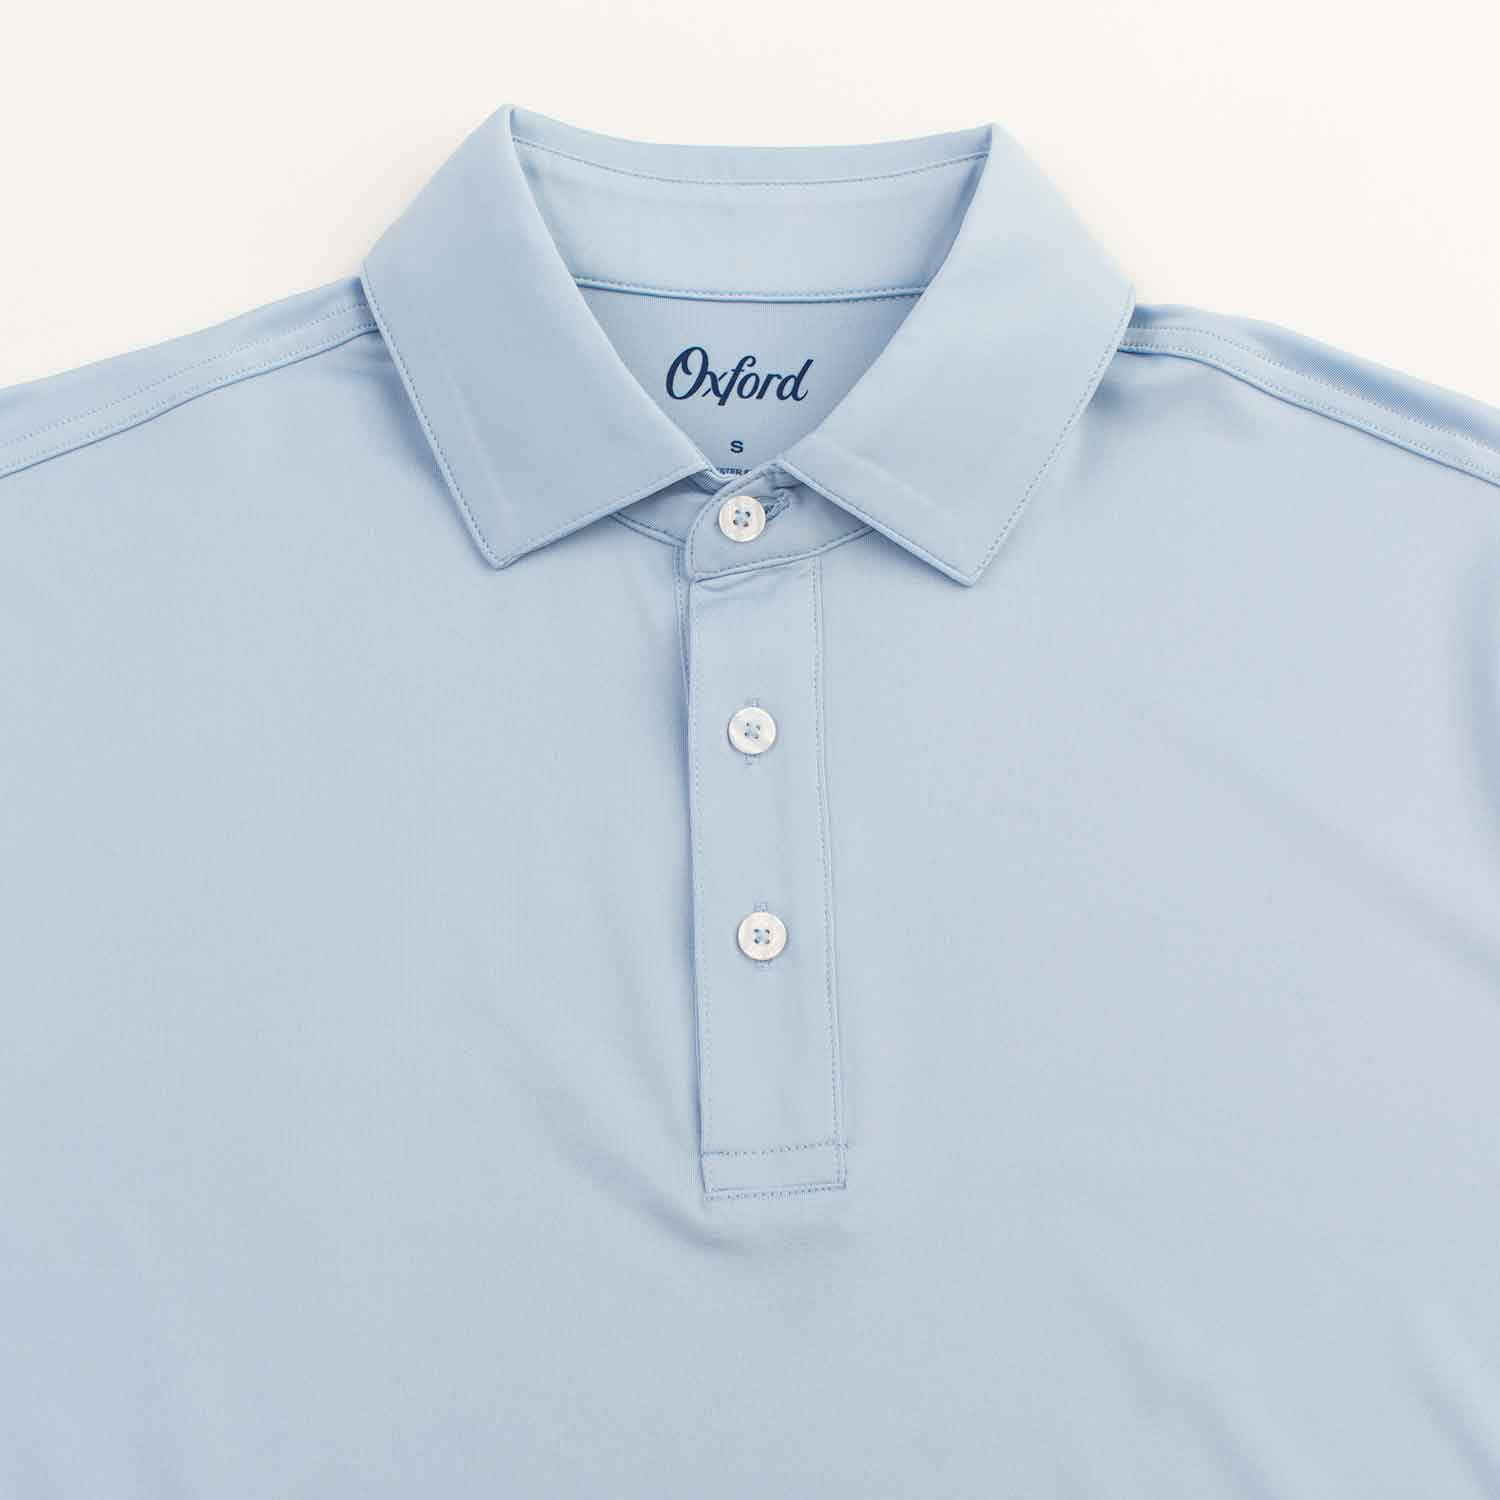 OXFORD ELLIOT COOLMAX PERFORMANCE JERSEY POLO